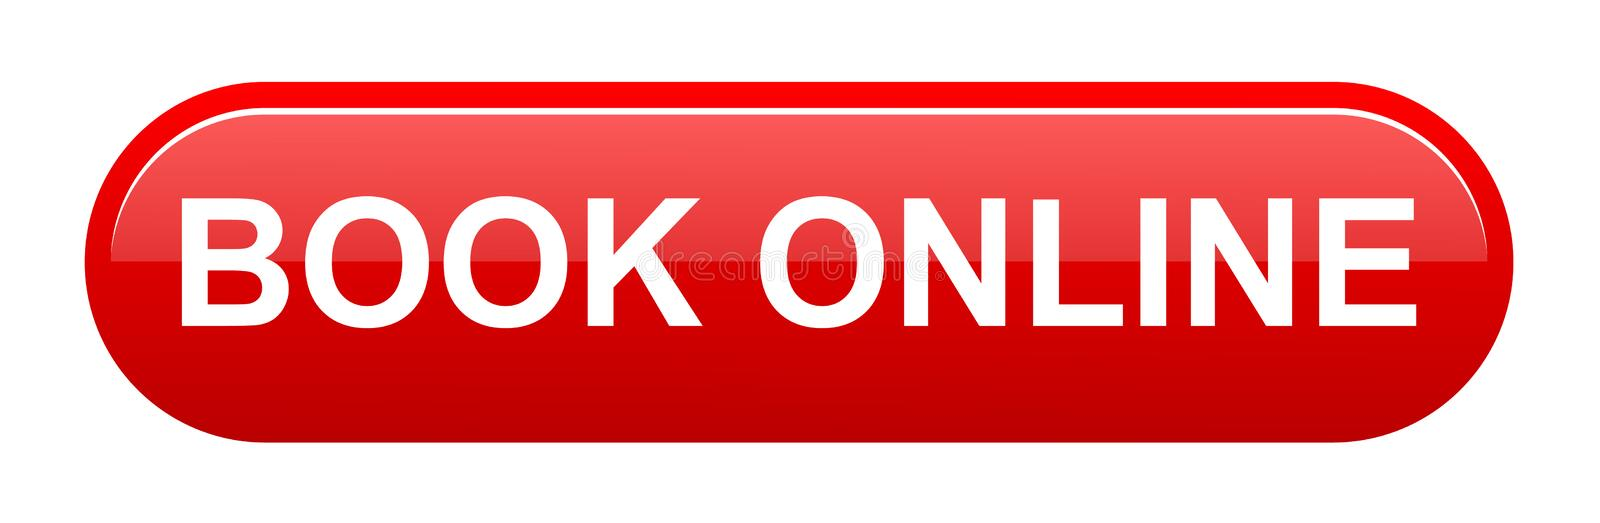 Book online button stock illustration